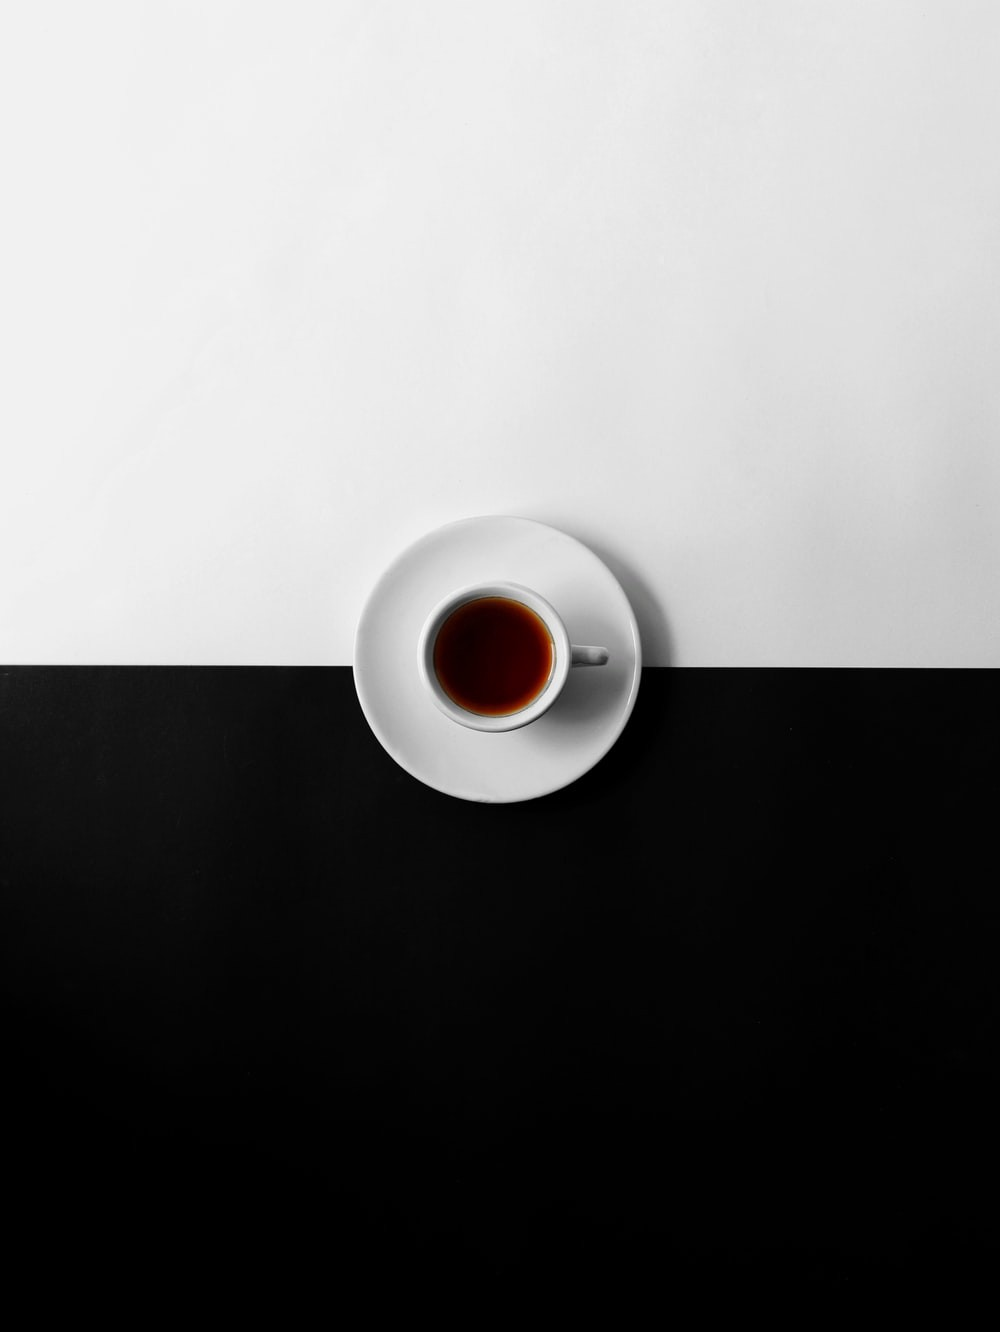 Flat view photo of a cup of coffee